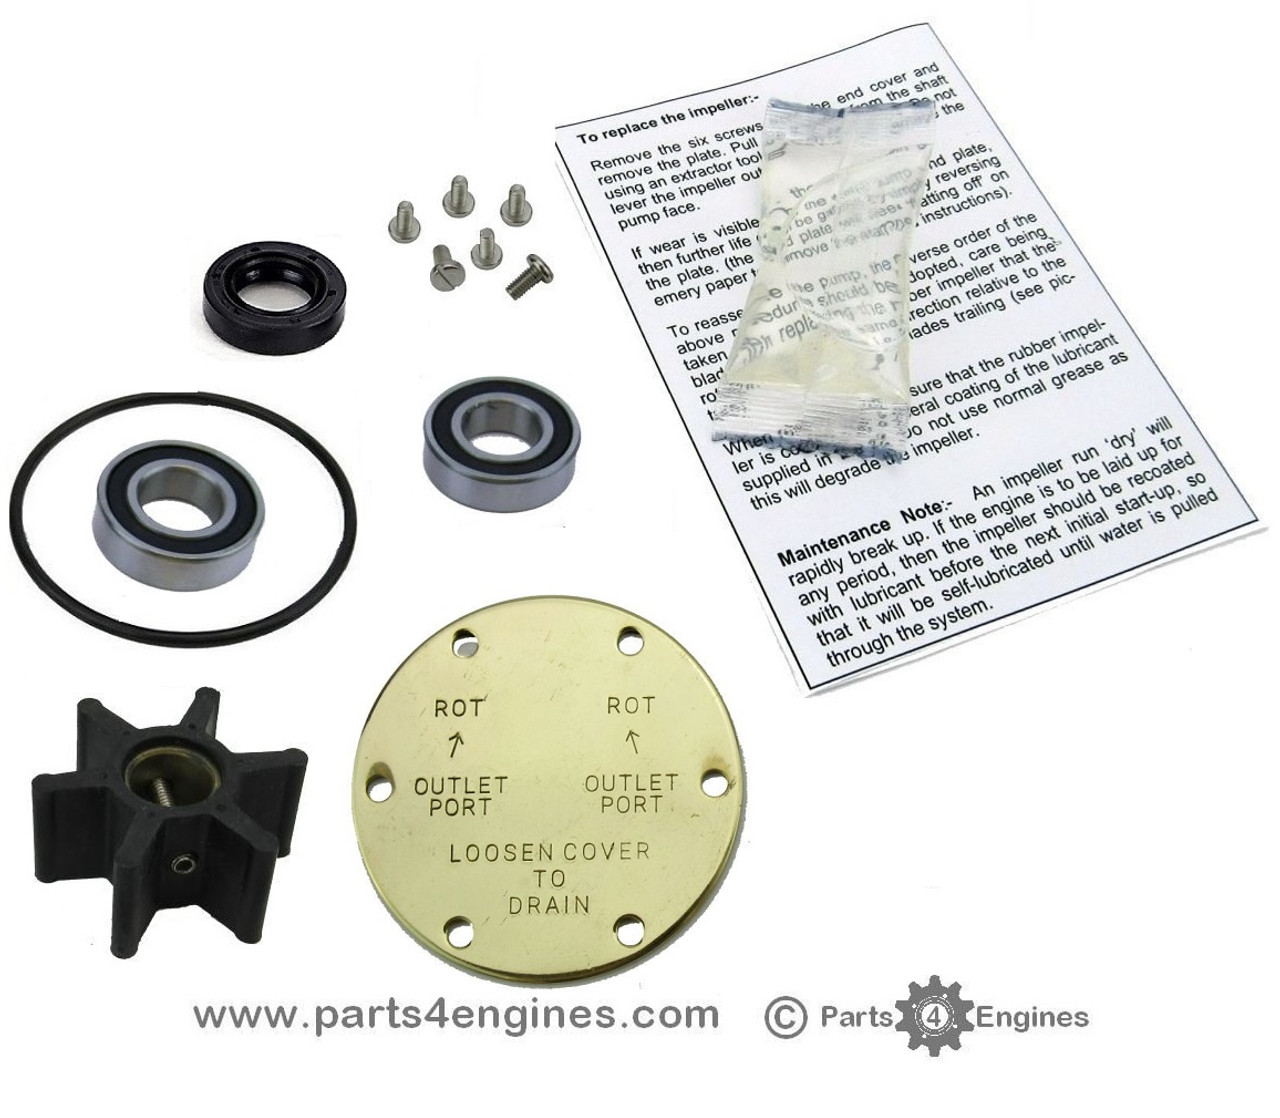 Yanmar 3YM20 Raw water pump rebuild kit - parts4engines.com